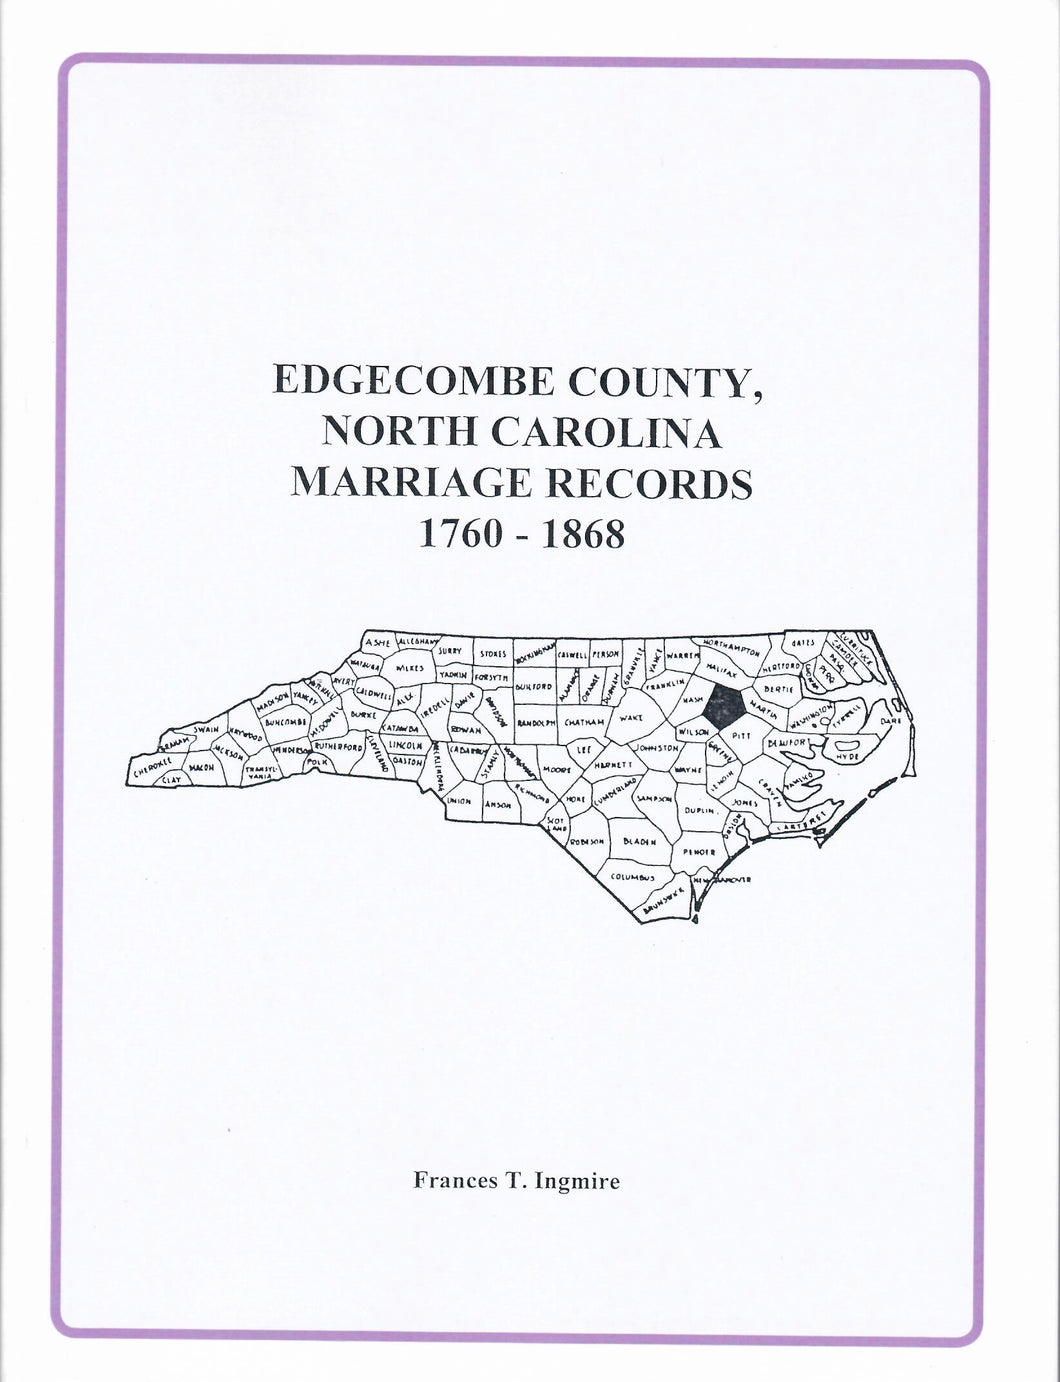 Edgecombe County, North Carolina Marriage Records, 1760 - 1868